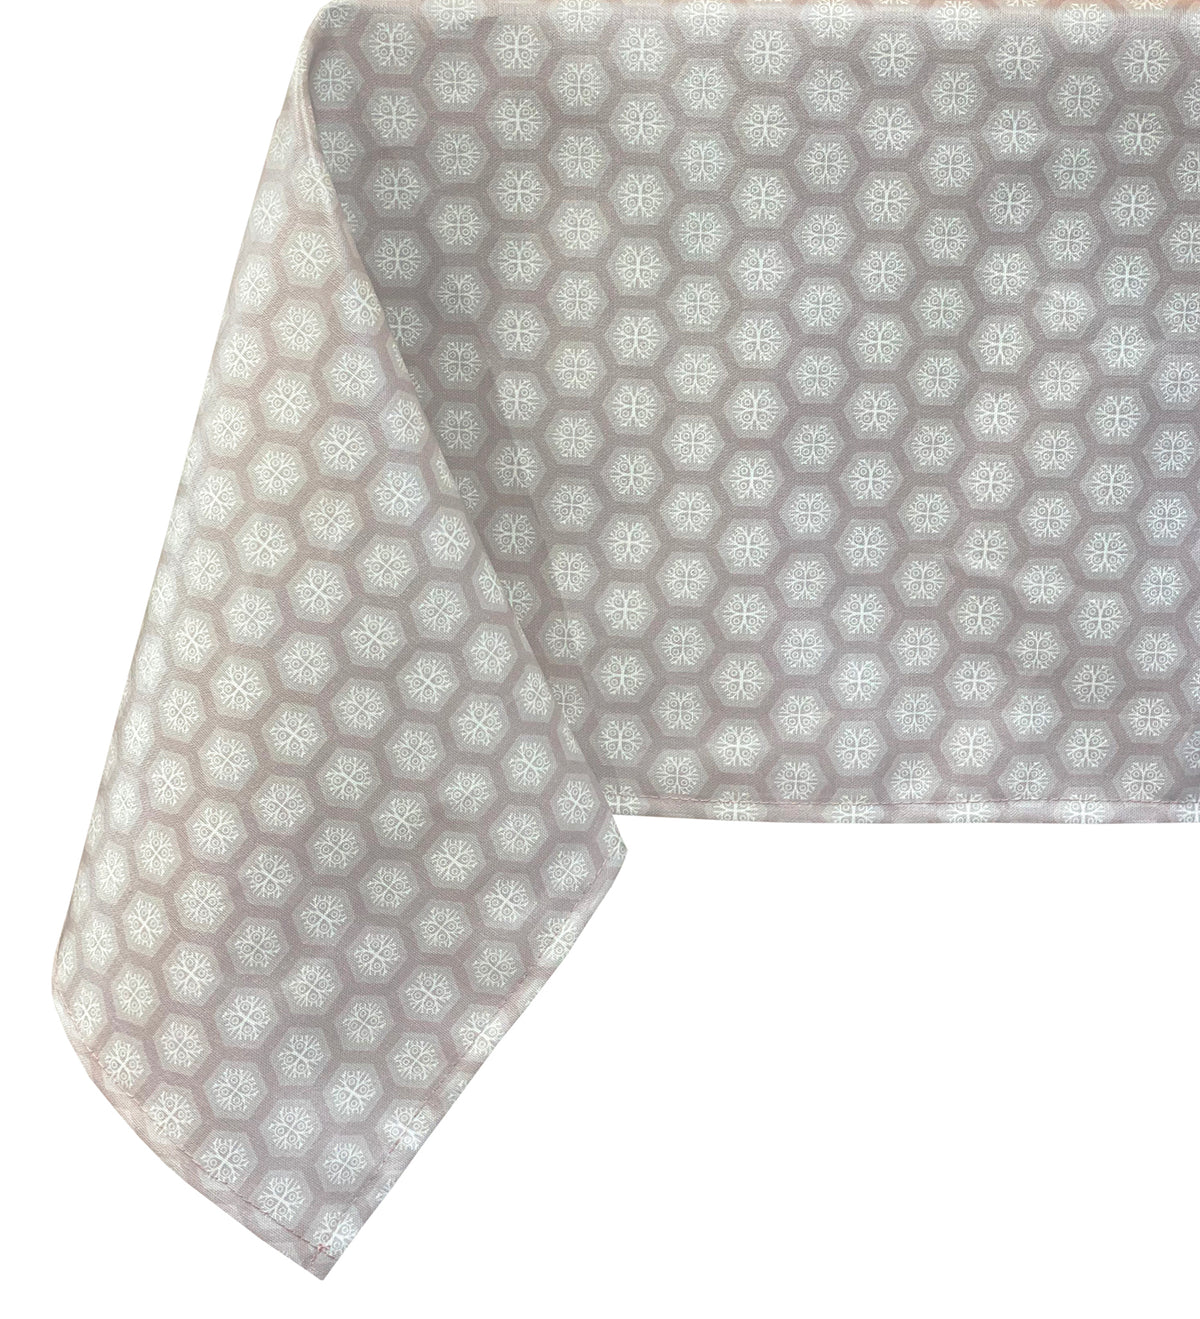 HEXA WIPEABLE TABLECLOTH